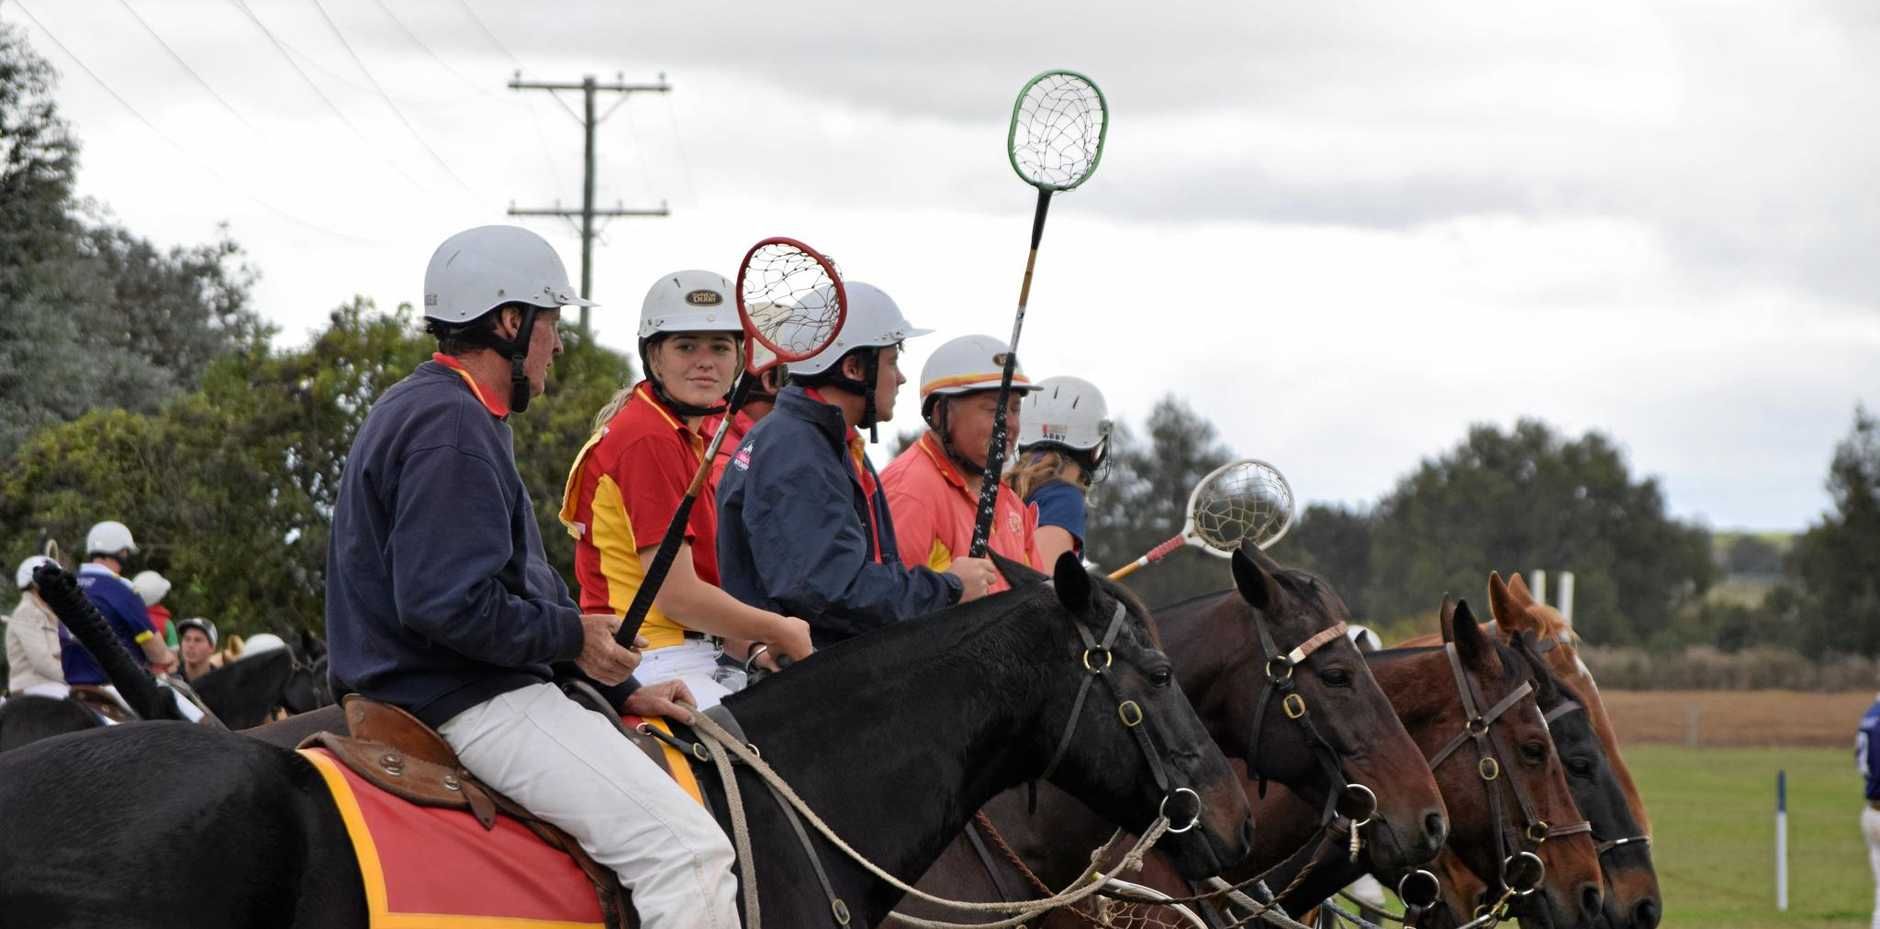 On the sidelines at the Killarney Polocrosse Carnival.